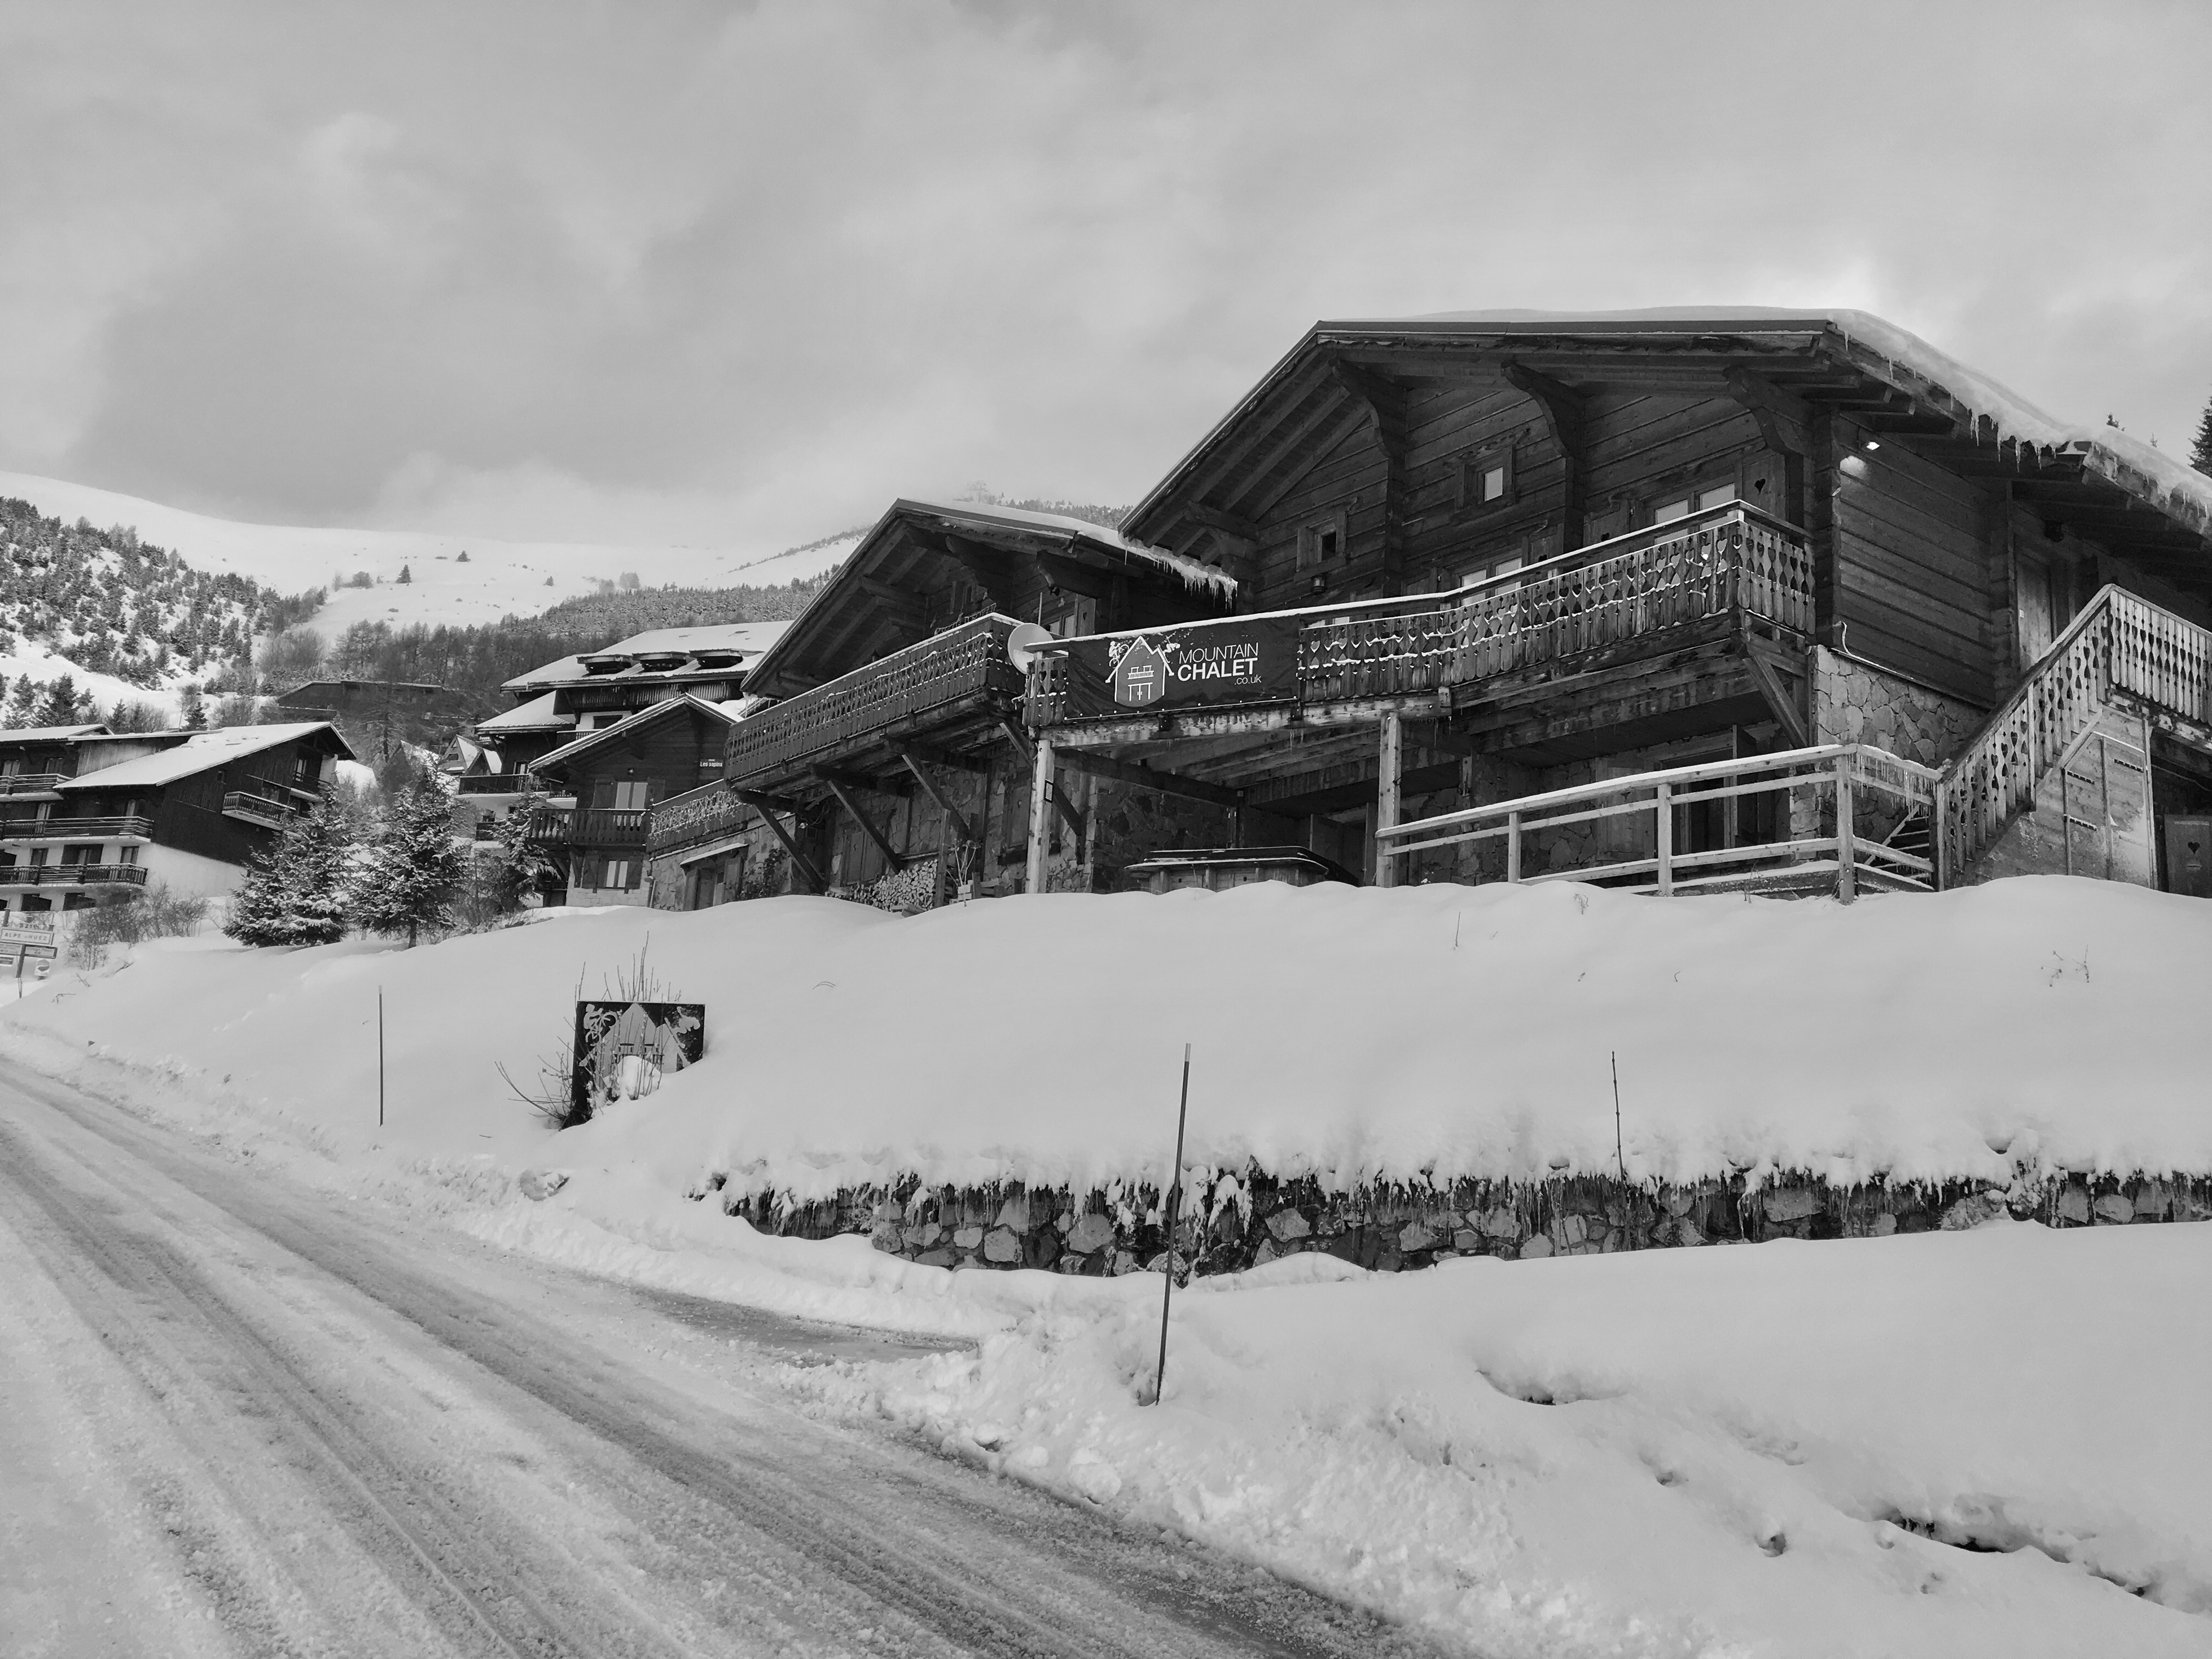 Front of Chalet B & W